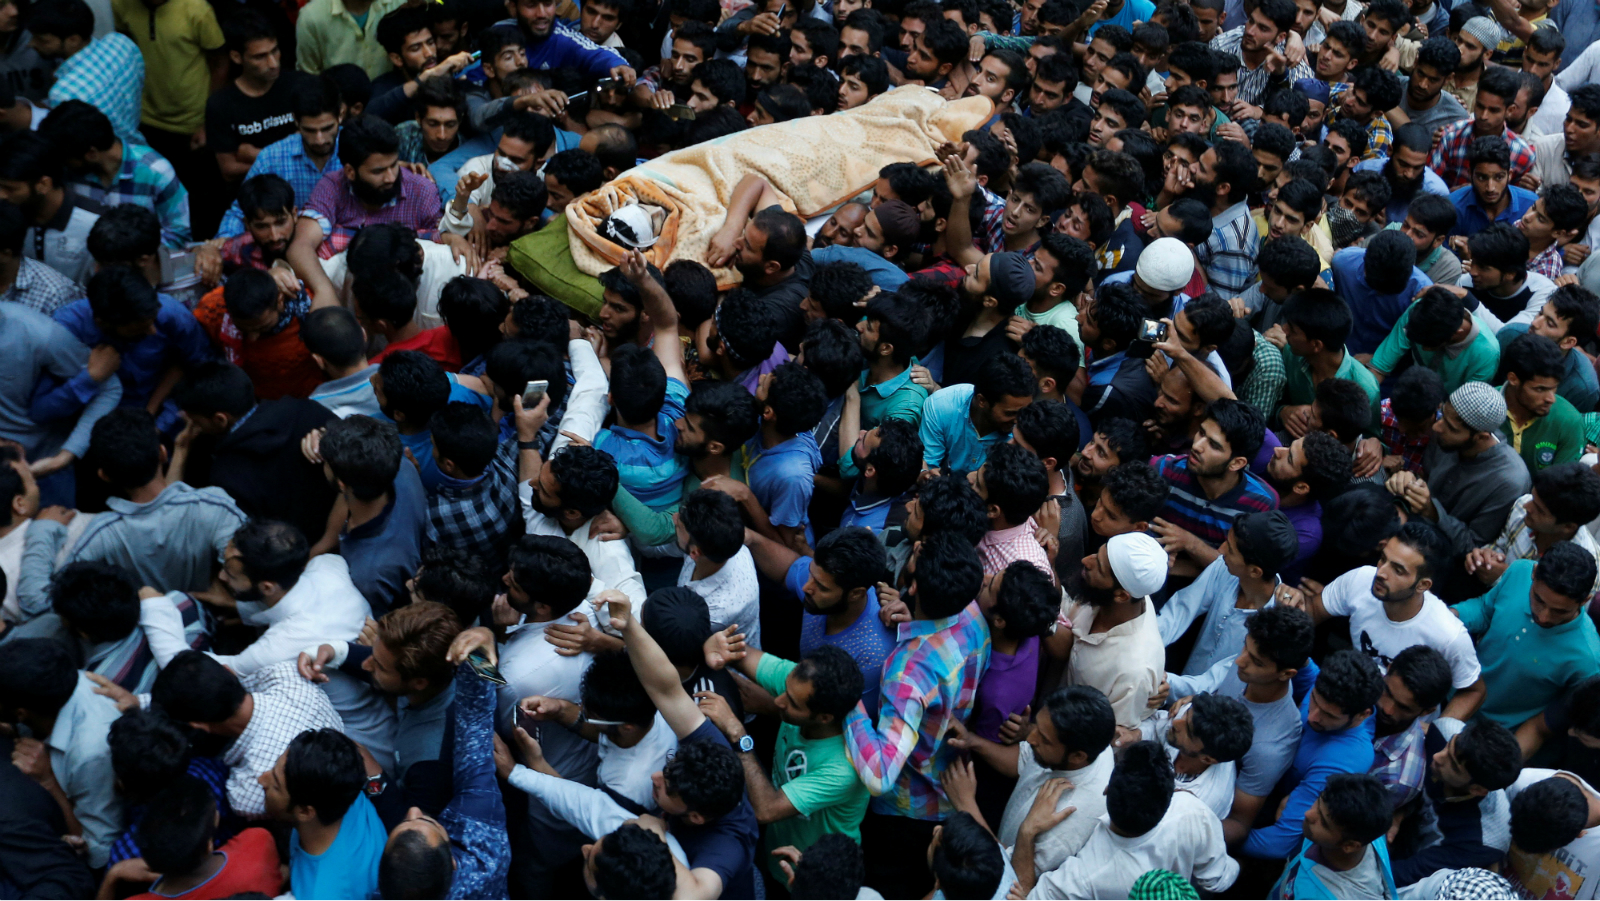 Kashmiri Muslims carry the body of Burhan Wani, a separatist militant leader, during his funeral in Tral, south of Srinagar, July 9, 2016.